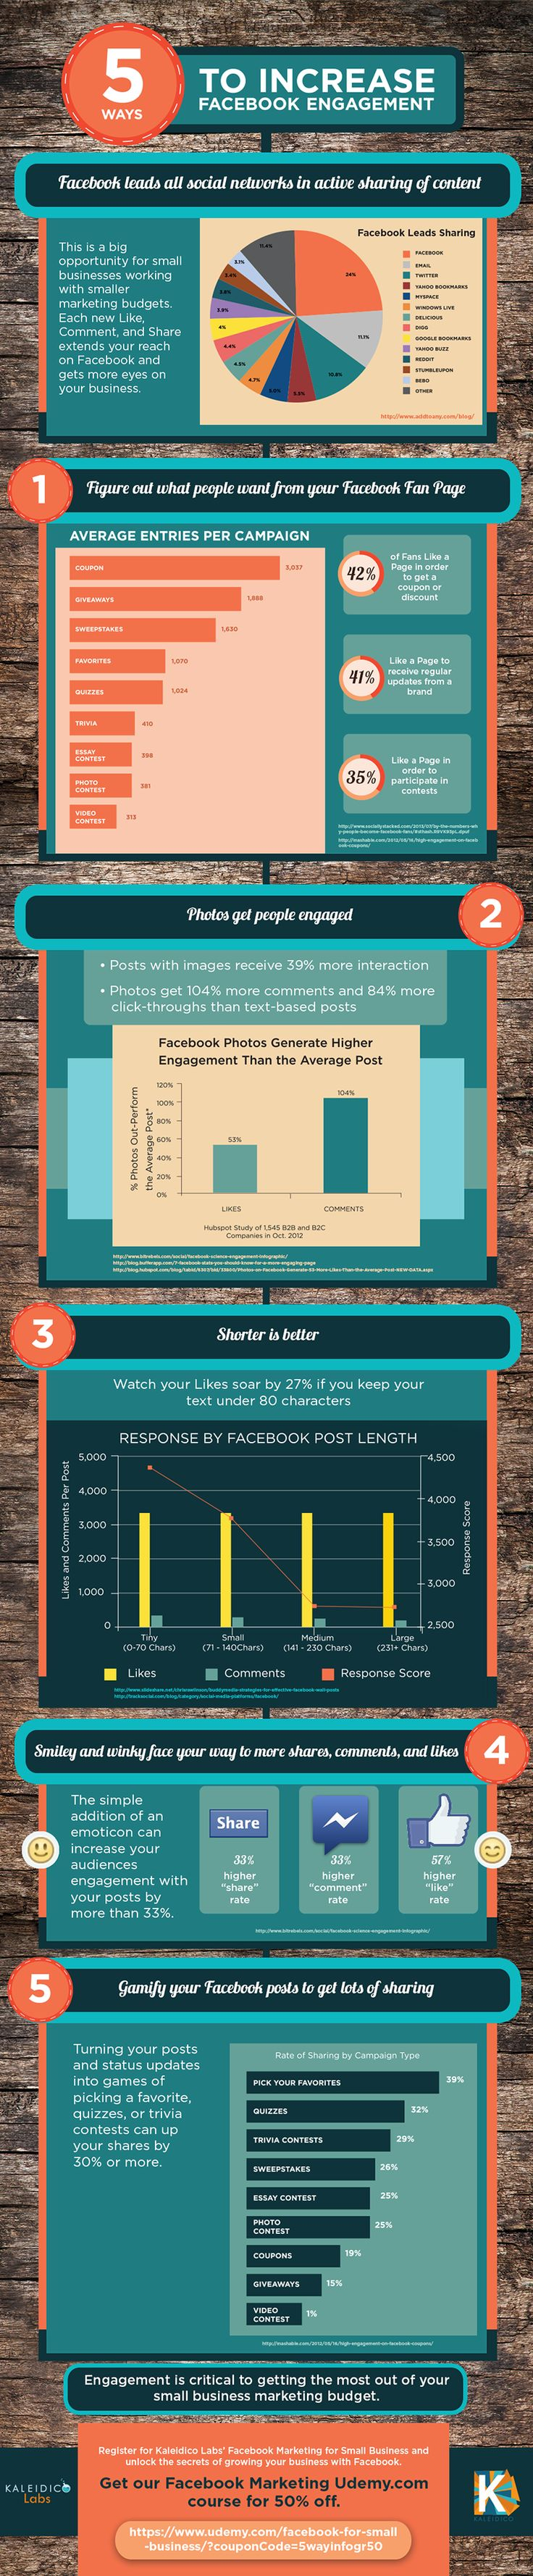 5 Tips to increase Facebook Engagement #infografia #infographic #socialmediaL Engagement, Sur Facebook, Infographic Socialmedia, Social Media, Engagement Facebook, Socialmedia Infographic, Engagement Infographic, Increase Facebook, Facebook Engagement